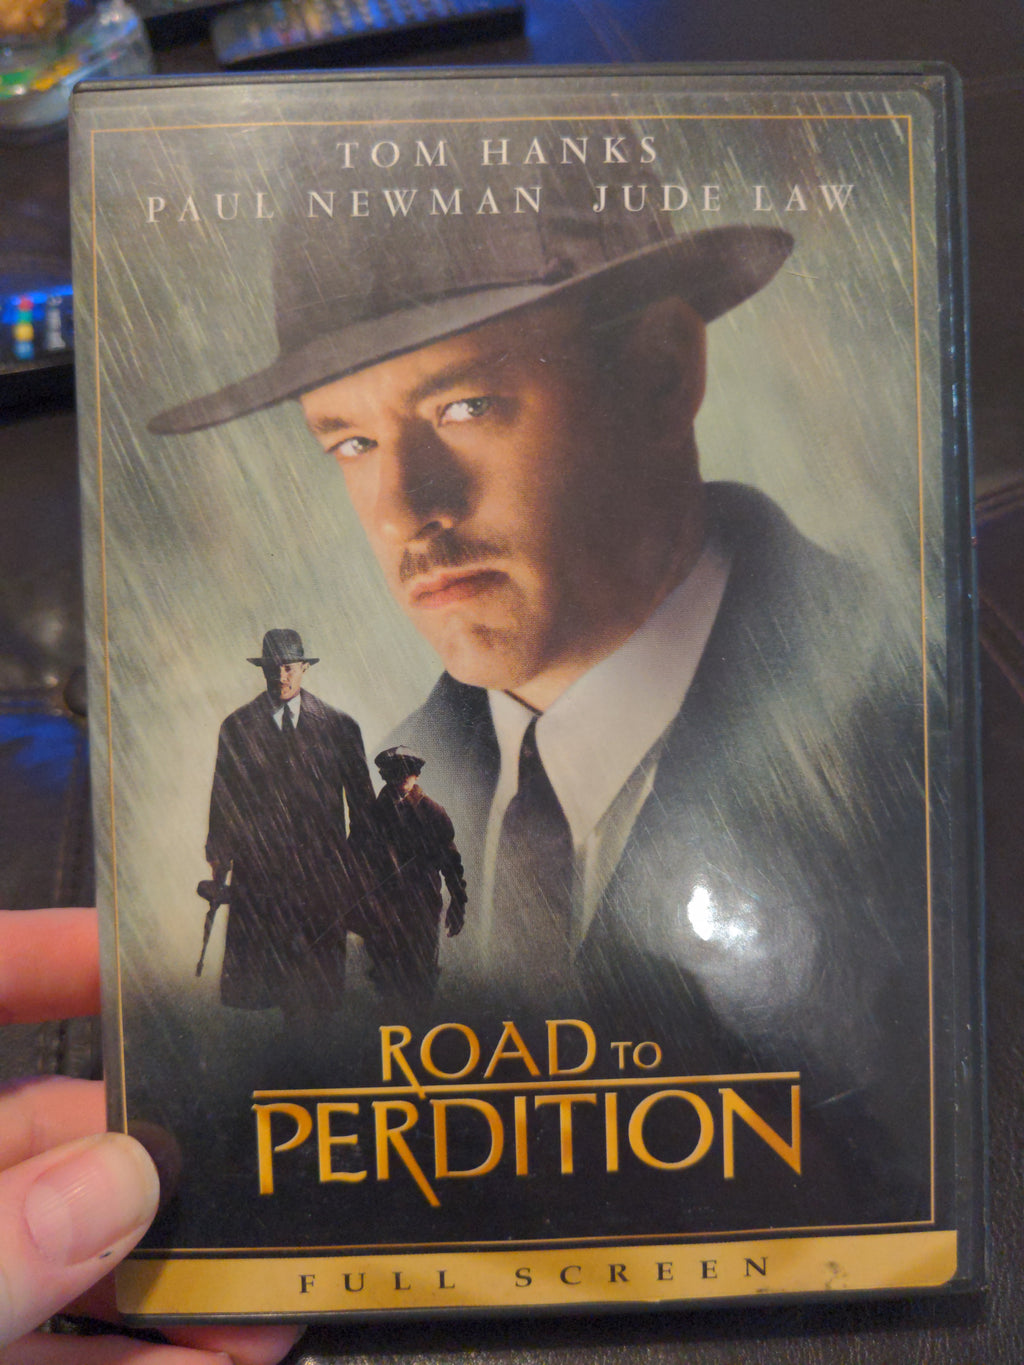 Road To Perdition Full Screen DVD - Tom Hanks - Paul Newman - Jude Law